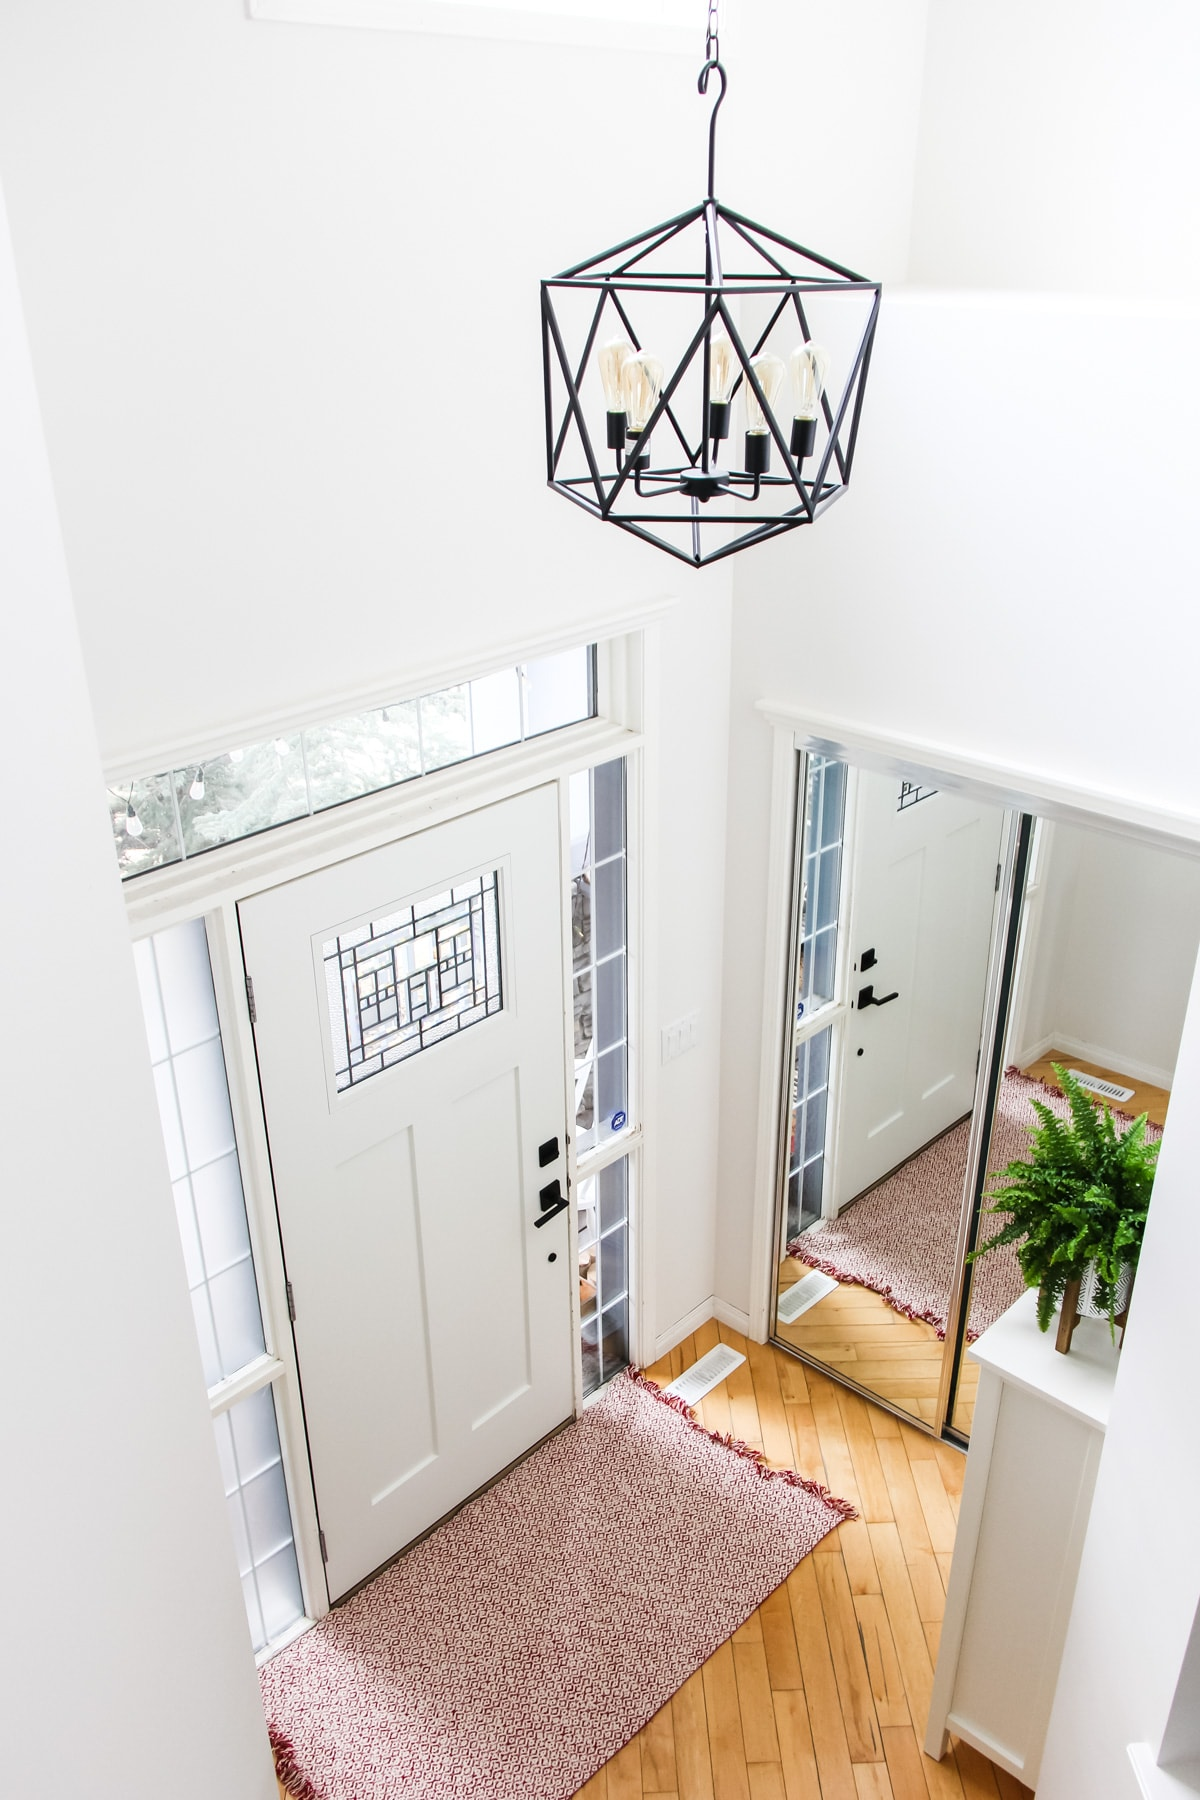 an image of a top down view of an entryway on the inside of a home. there is a white craftsman door, a black cage light hanging from the ceiling, a pink rug and a green fern